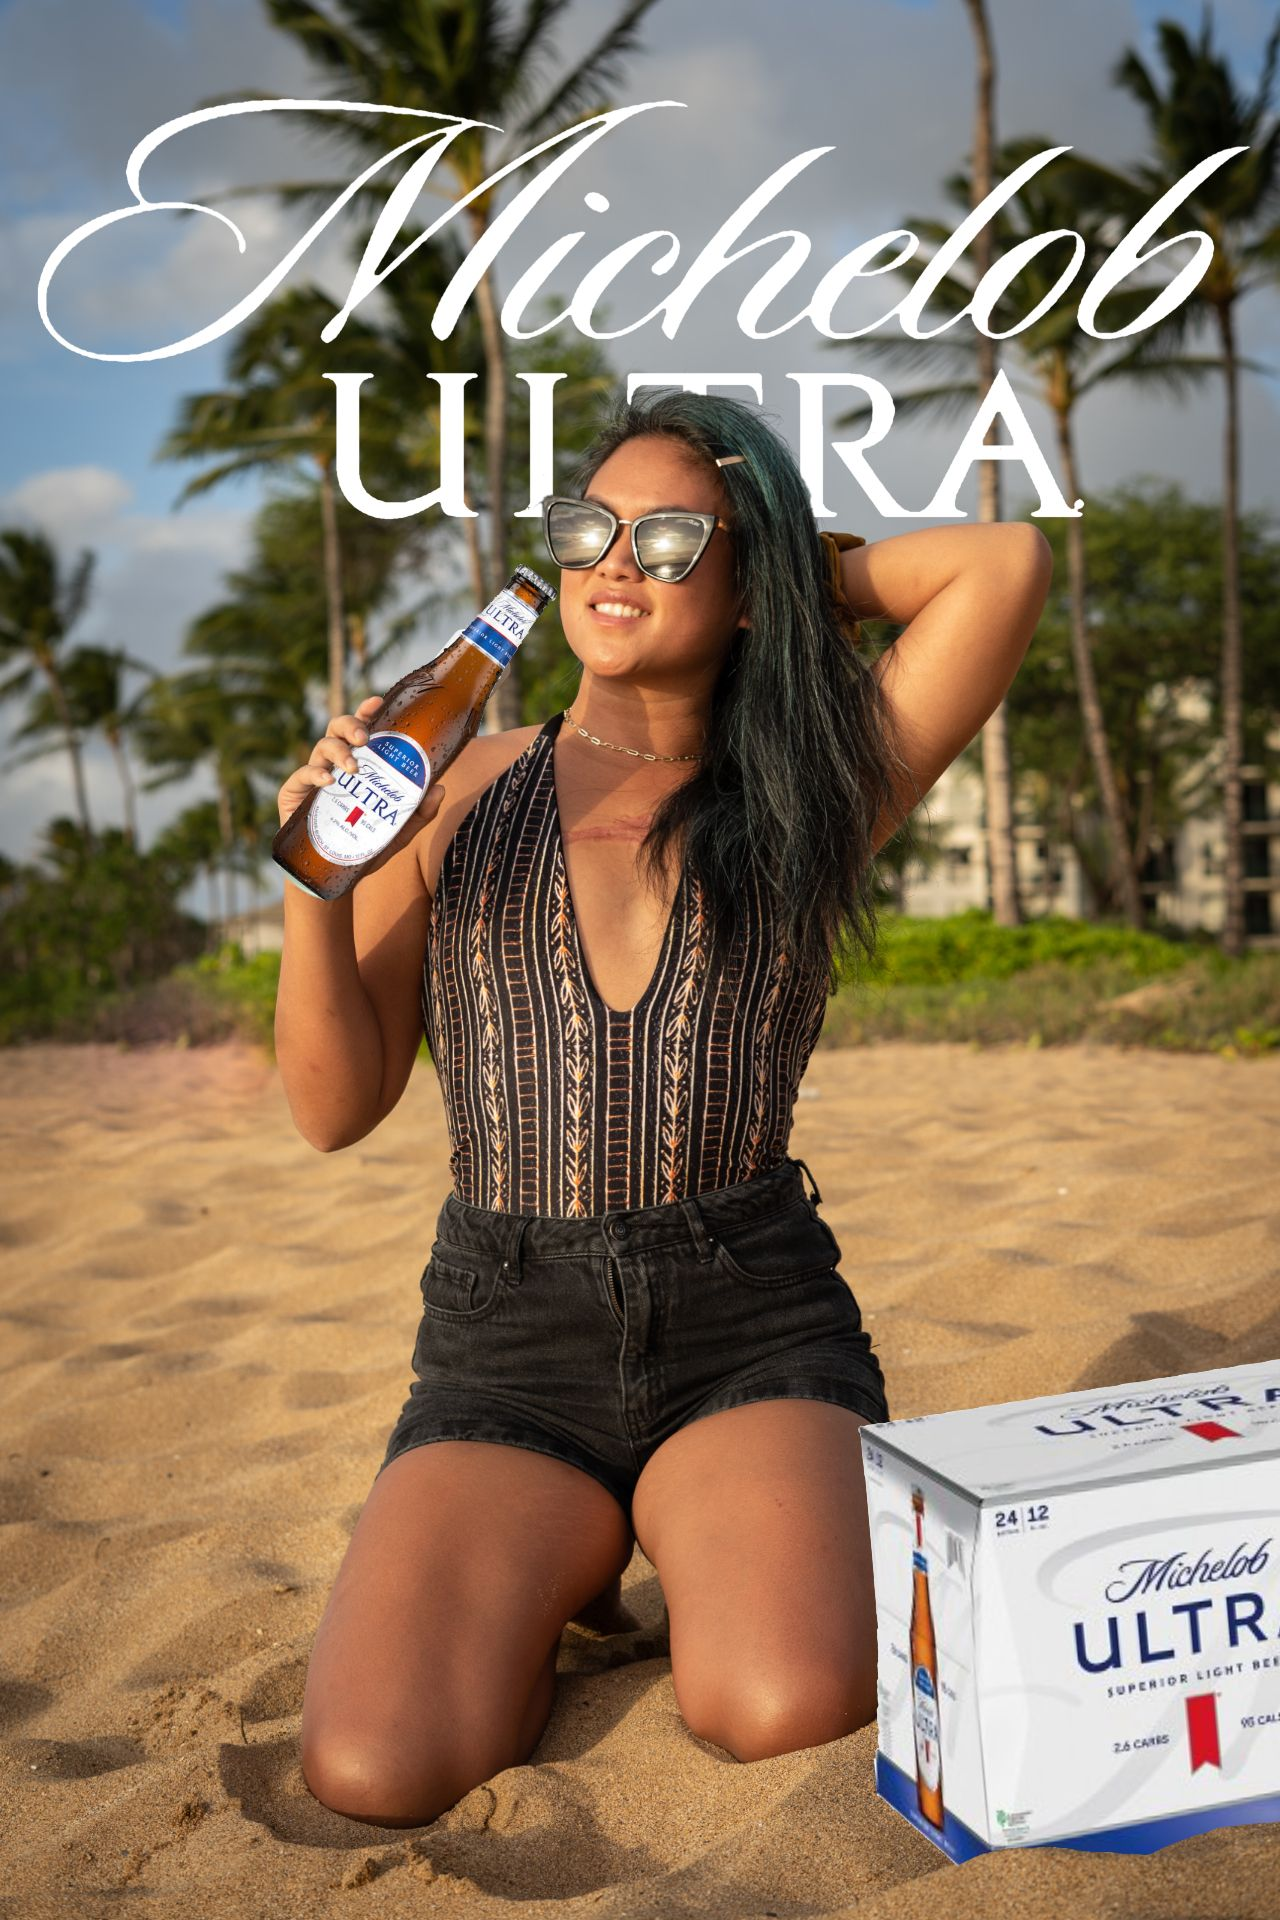 An example of the TikTok Beer Poster trend using the Michelob Ultra brand.